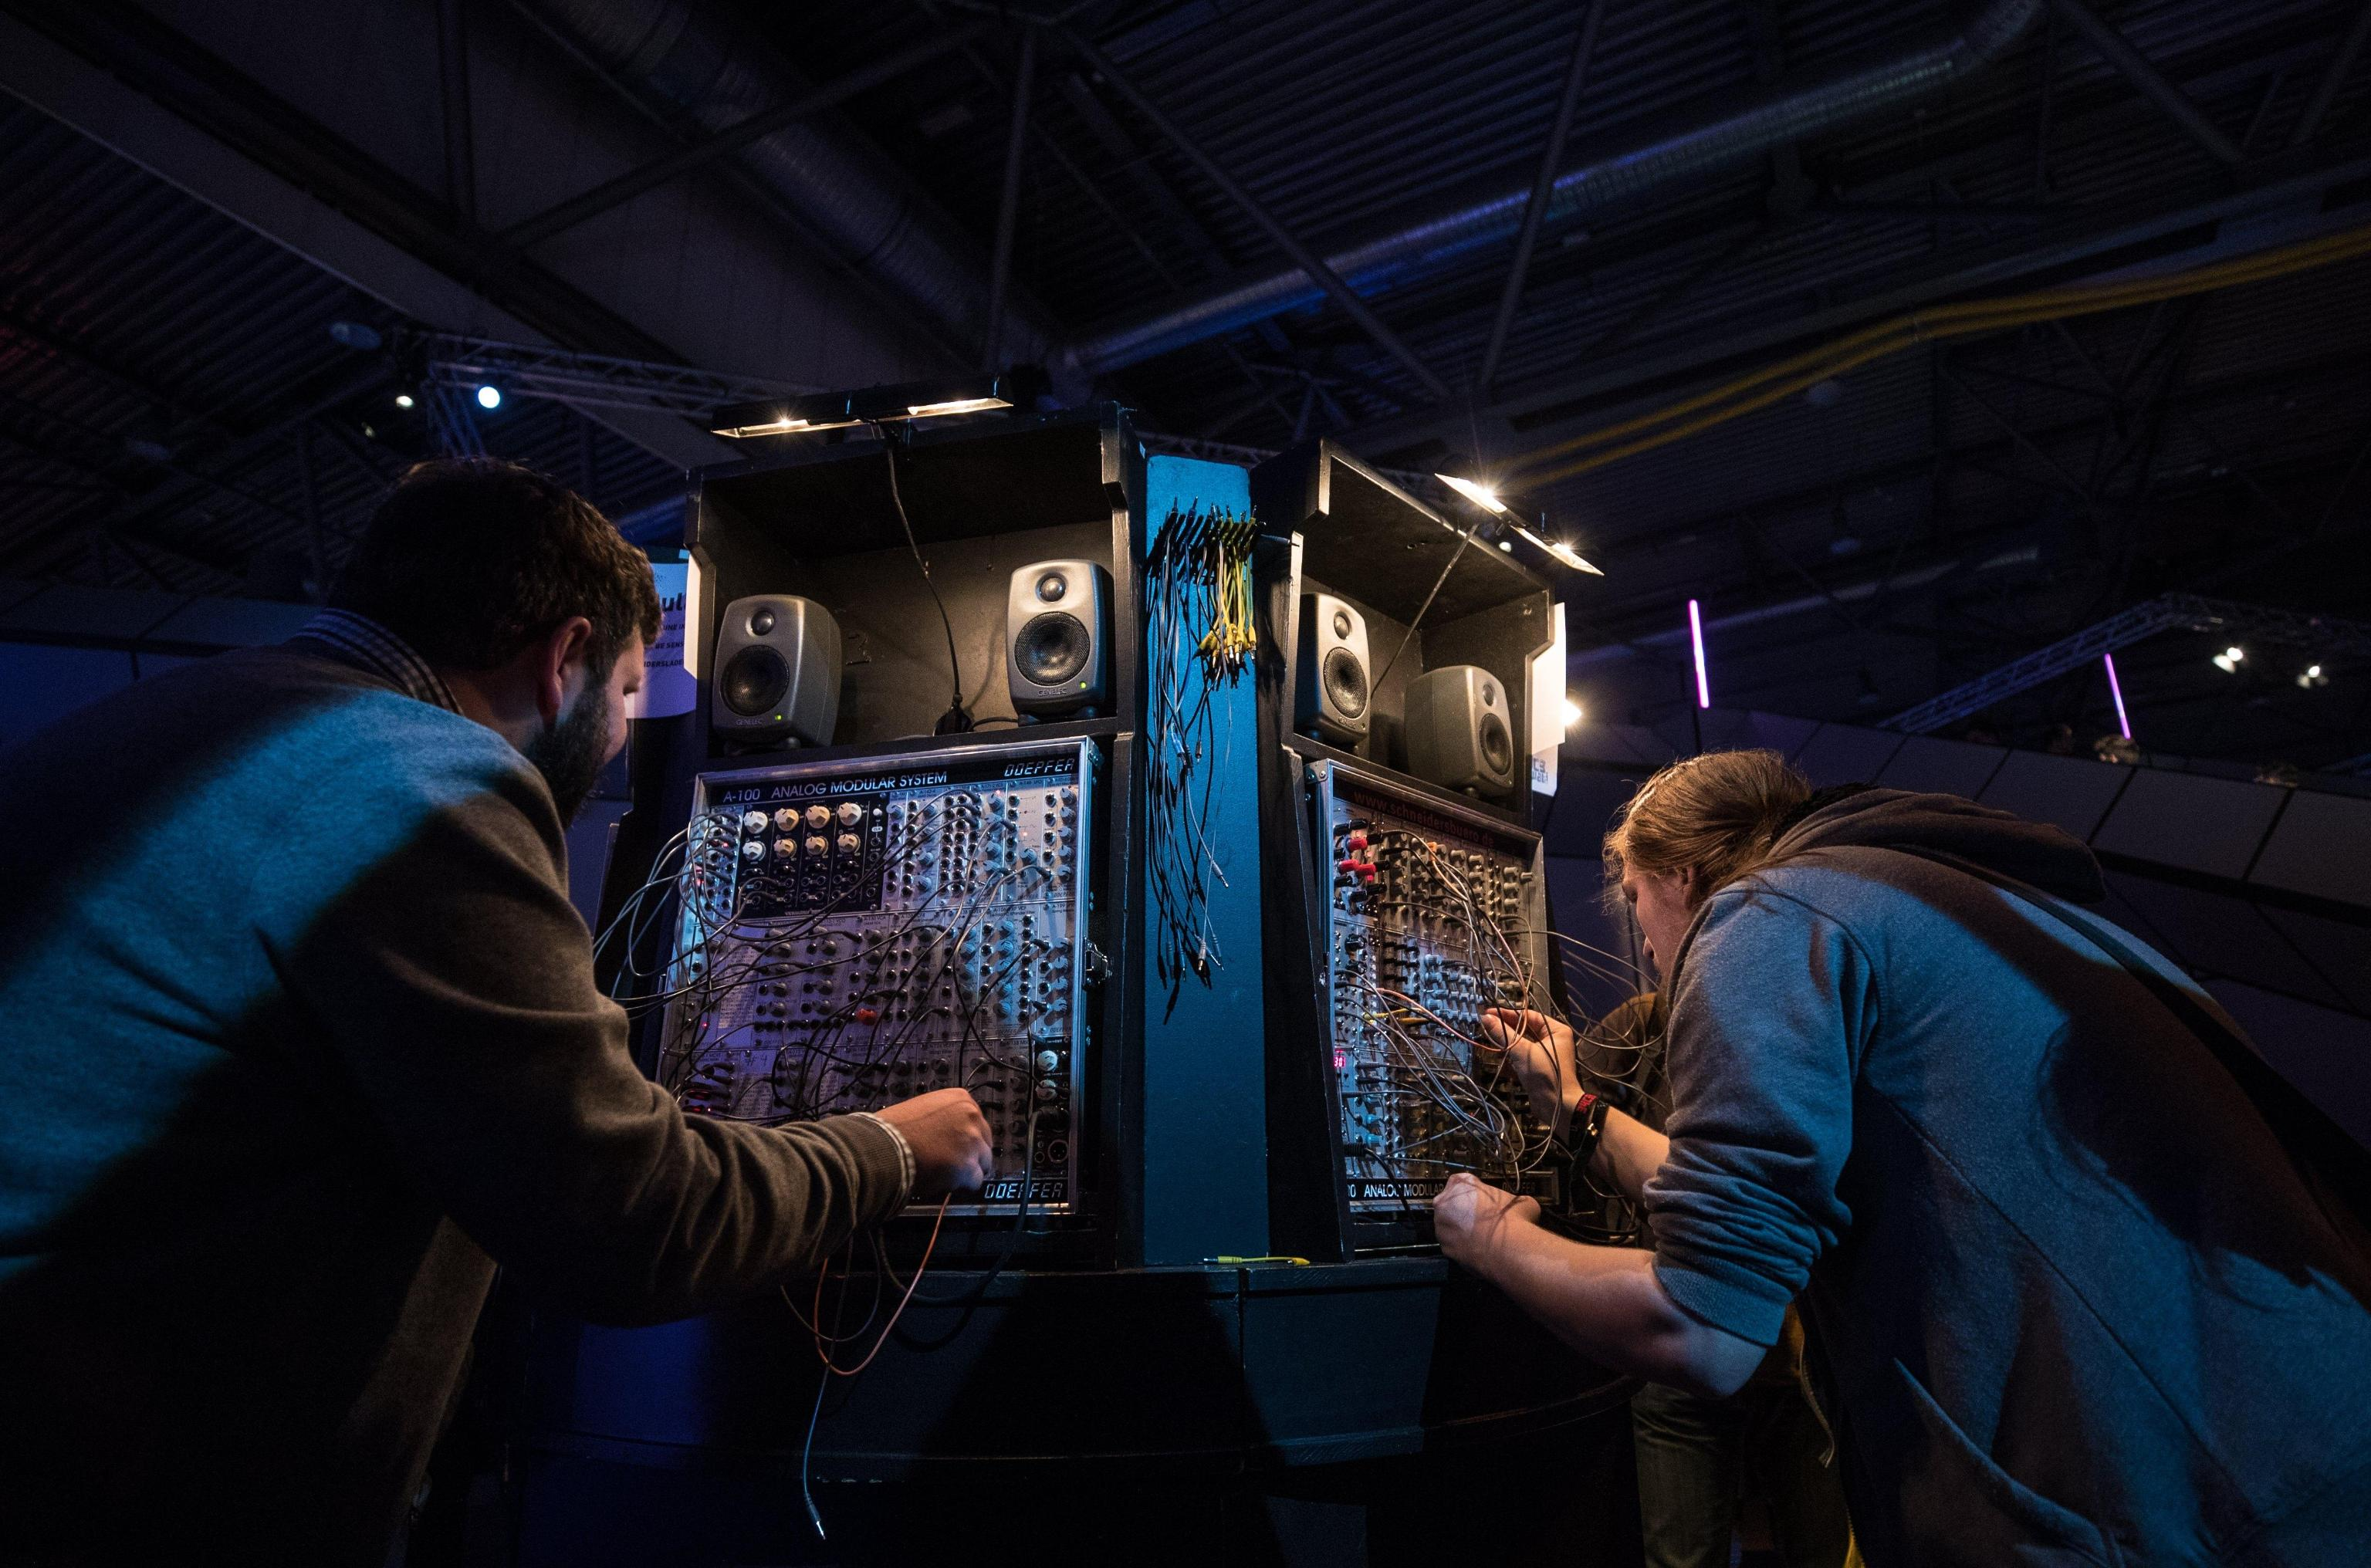 Visitors try a sound machine at the Chaos Communication Congress (CCC) in Leipzig, Germany, 27 December 2017. The world's largest non-commercial hacker meeting takes place until 30 December 2017.  EPA/HAYOUNG JEON